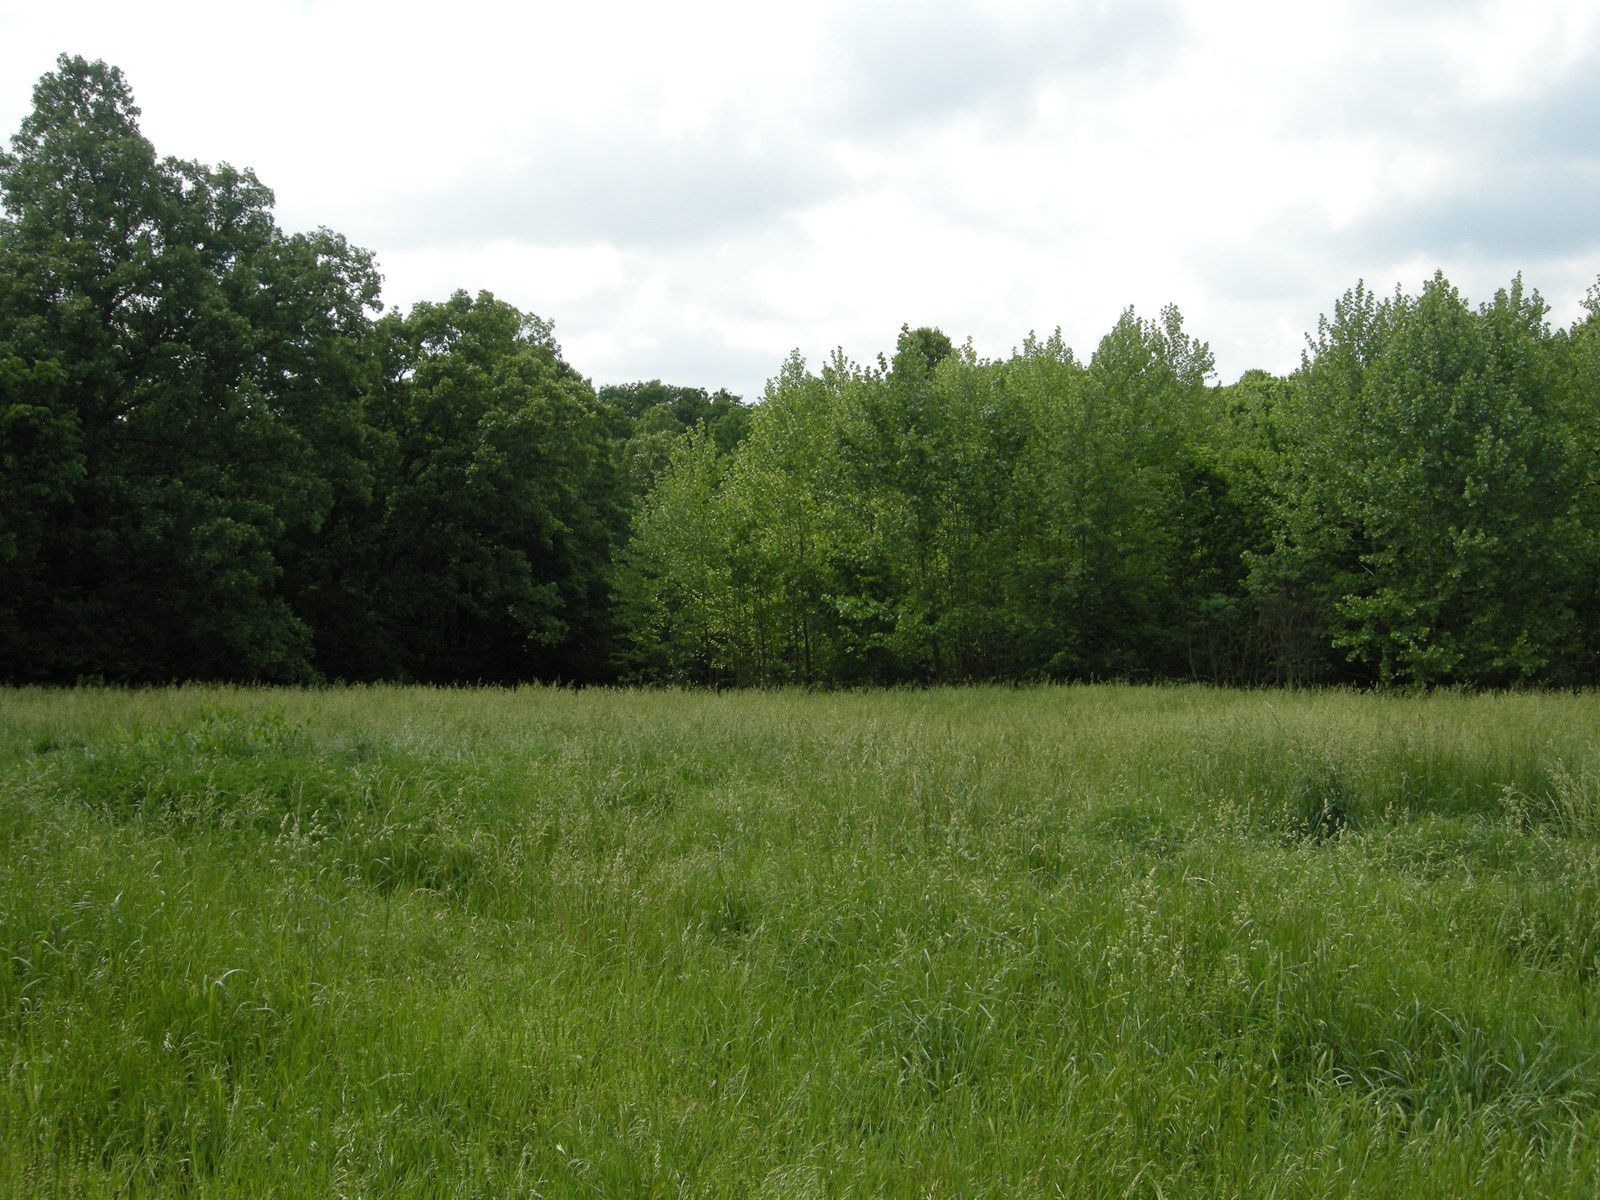 Northwest Arkansas 1.48 Acre Lot For Sale in Golf Community